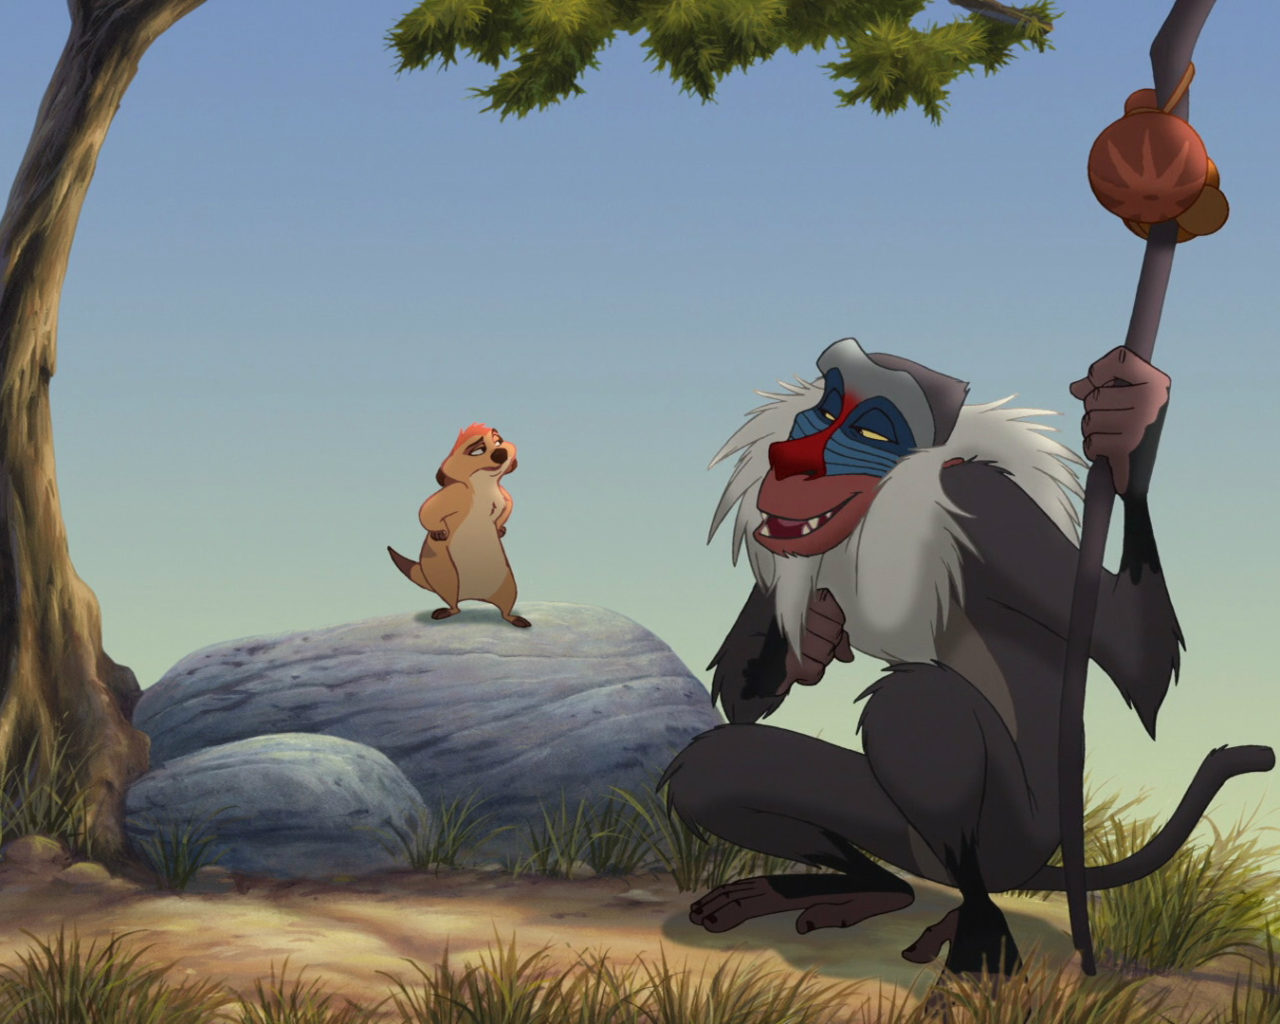 Lion Hd Wallpapers Backgrounds Wallpaper 1920 1080 Picture: Rafiki And Ma Disney Picture Wallpaper Hd 1920x1080